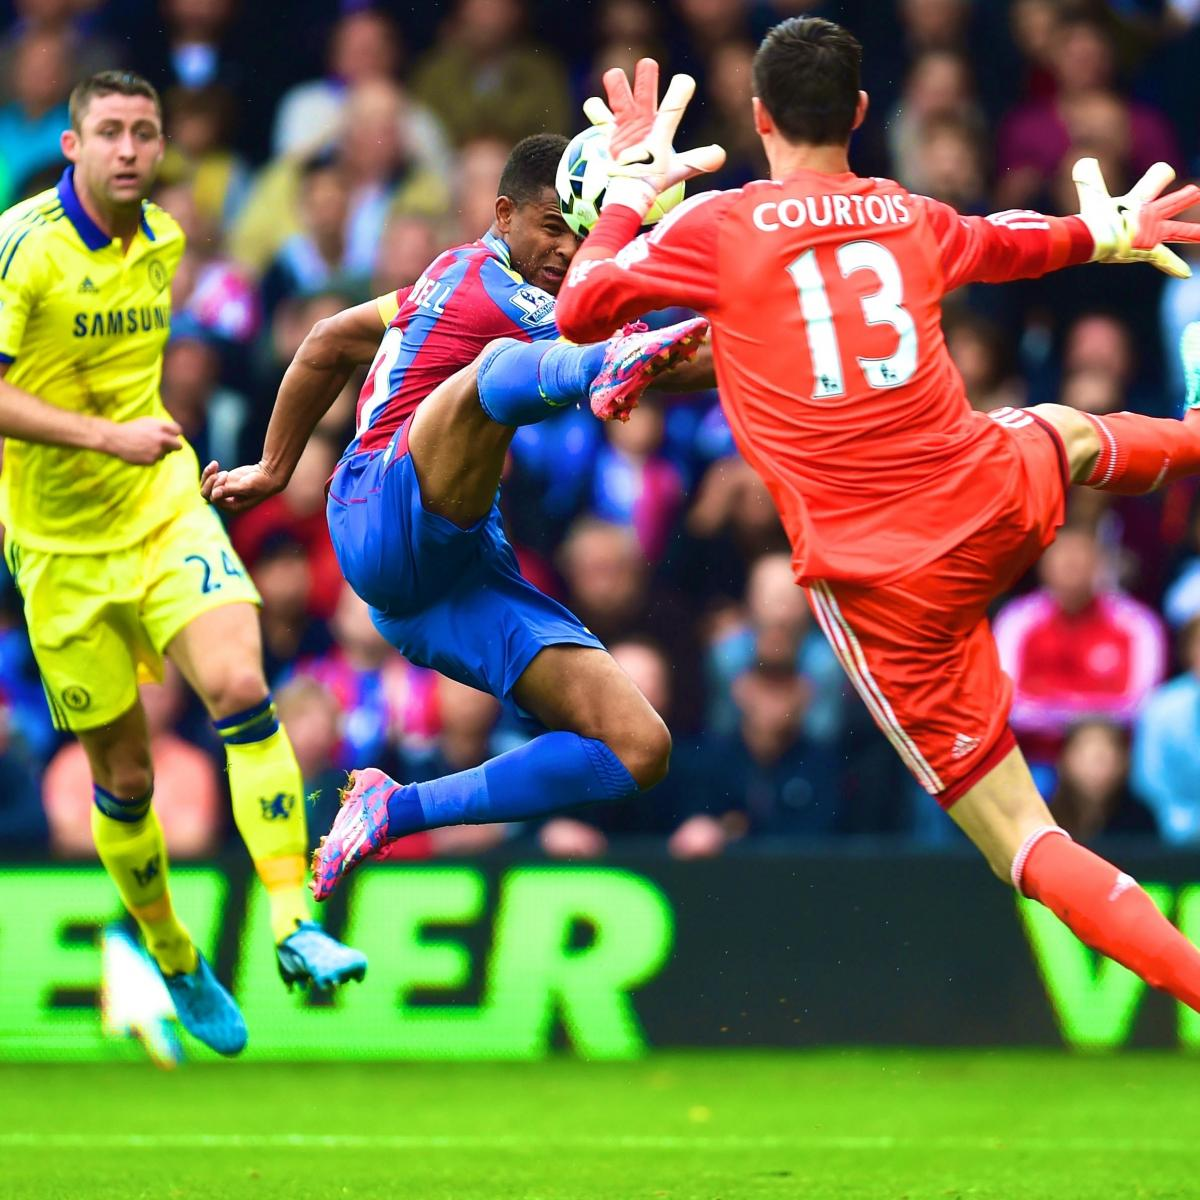 Psg Vs Chelsea Live Score Highlights From Champions: Crystal Palace Vs. Chelsea: Live Score, Highlights From